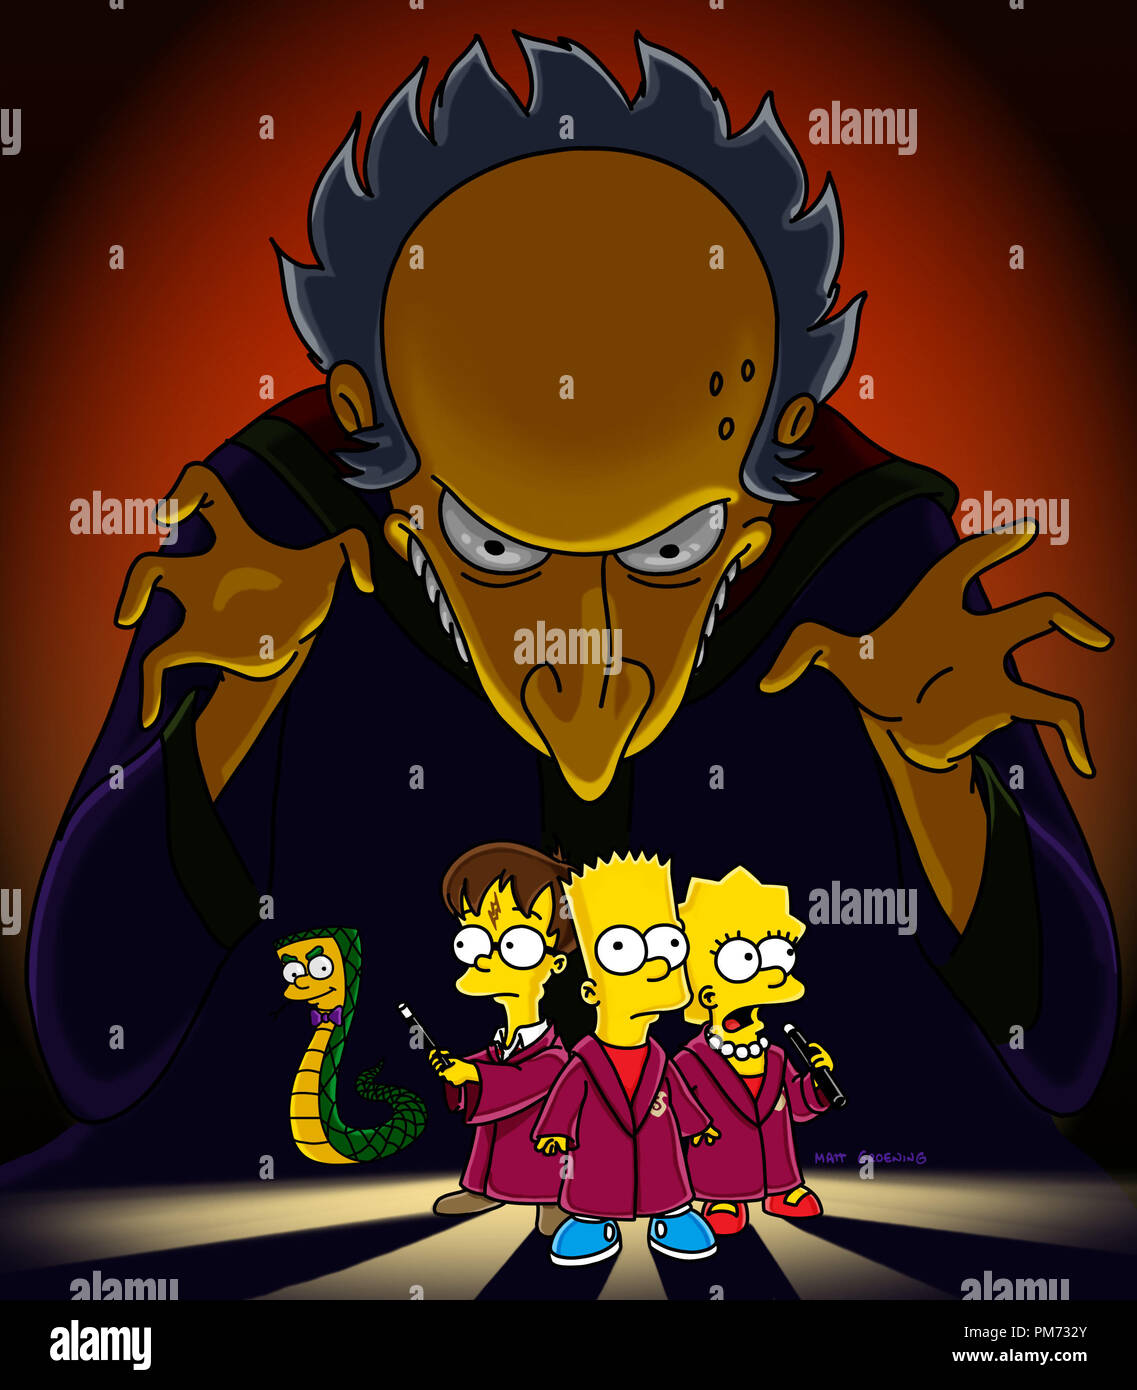 Film Still Publicity Still From The Simpsons Episode Treehouse Of Horror Xii Lord Montymort Slithers Harry Potter Bart Simpson Lisa Simpson November 6 2001 File Reference 30847128tha For Editorial Use